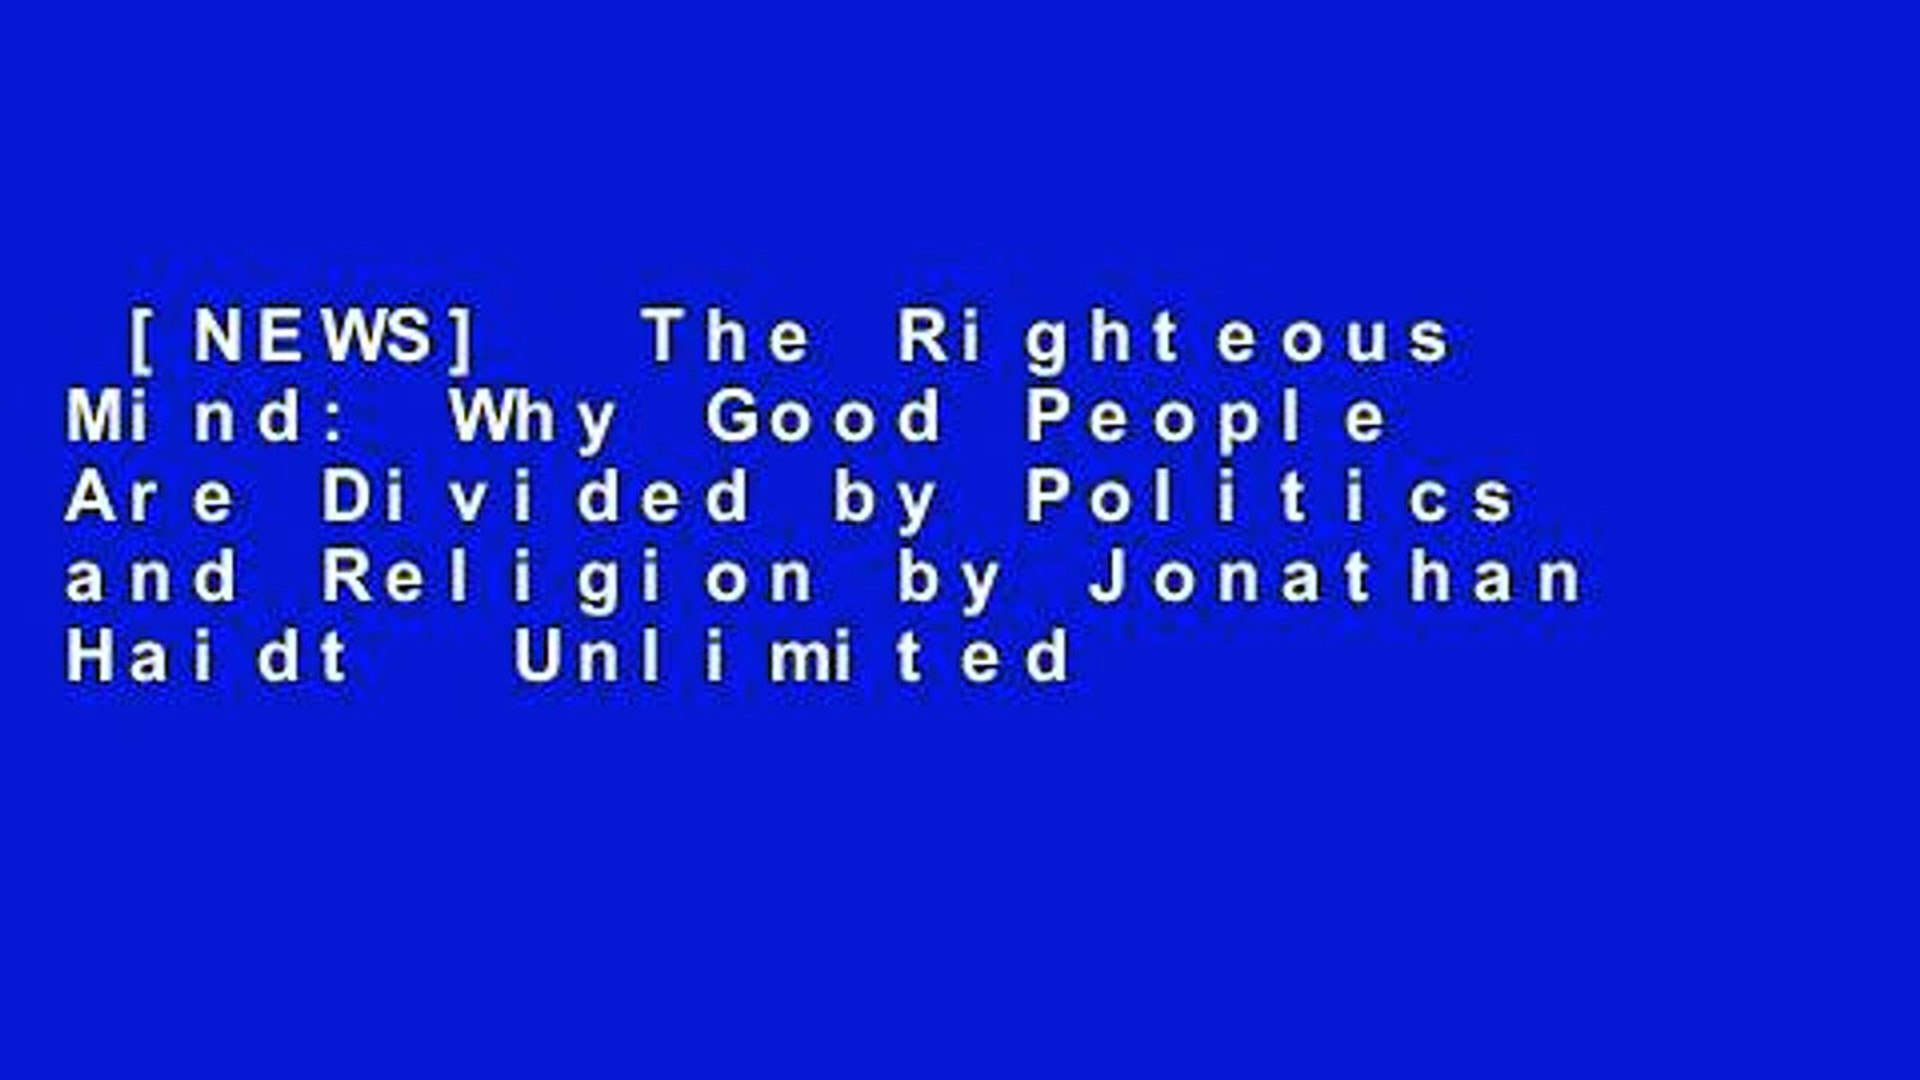 [NEWS]  The Righteous Mind: Why Good People Are Divided by Politics and